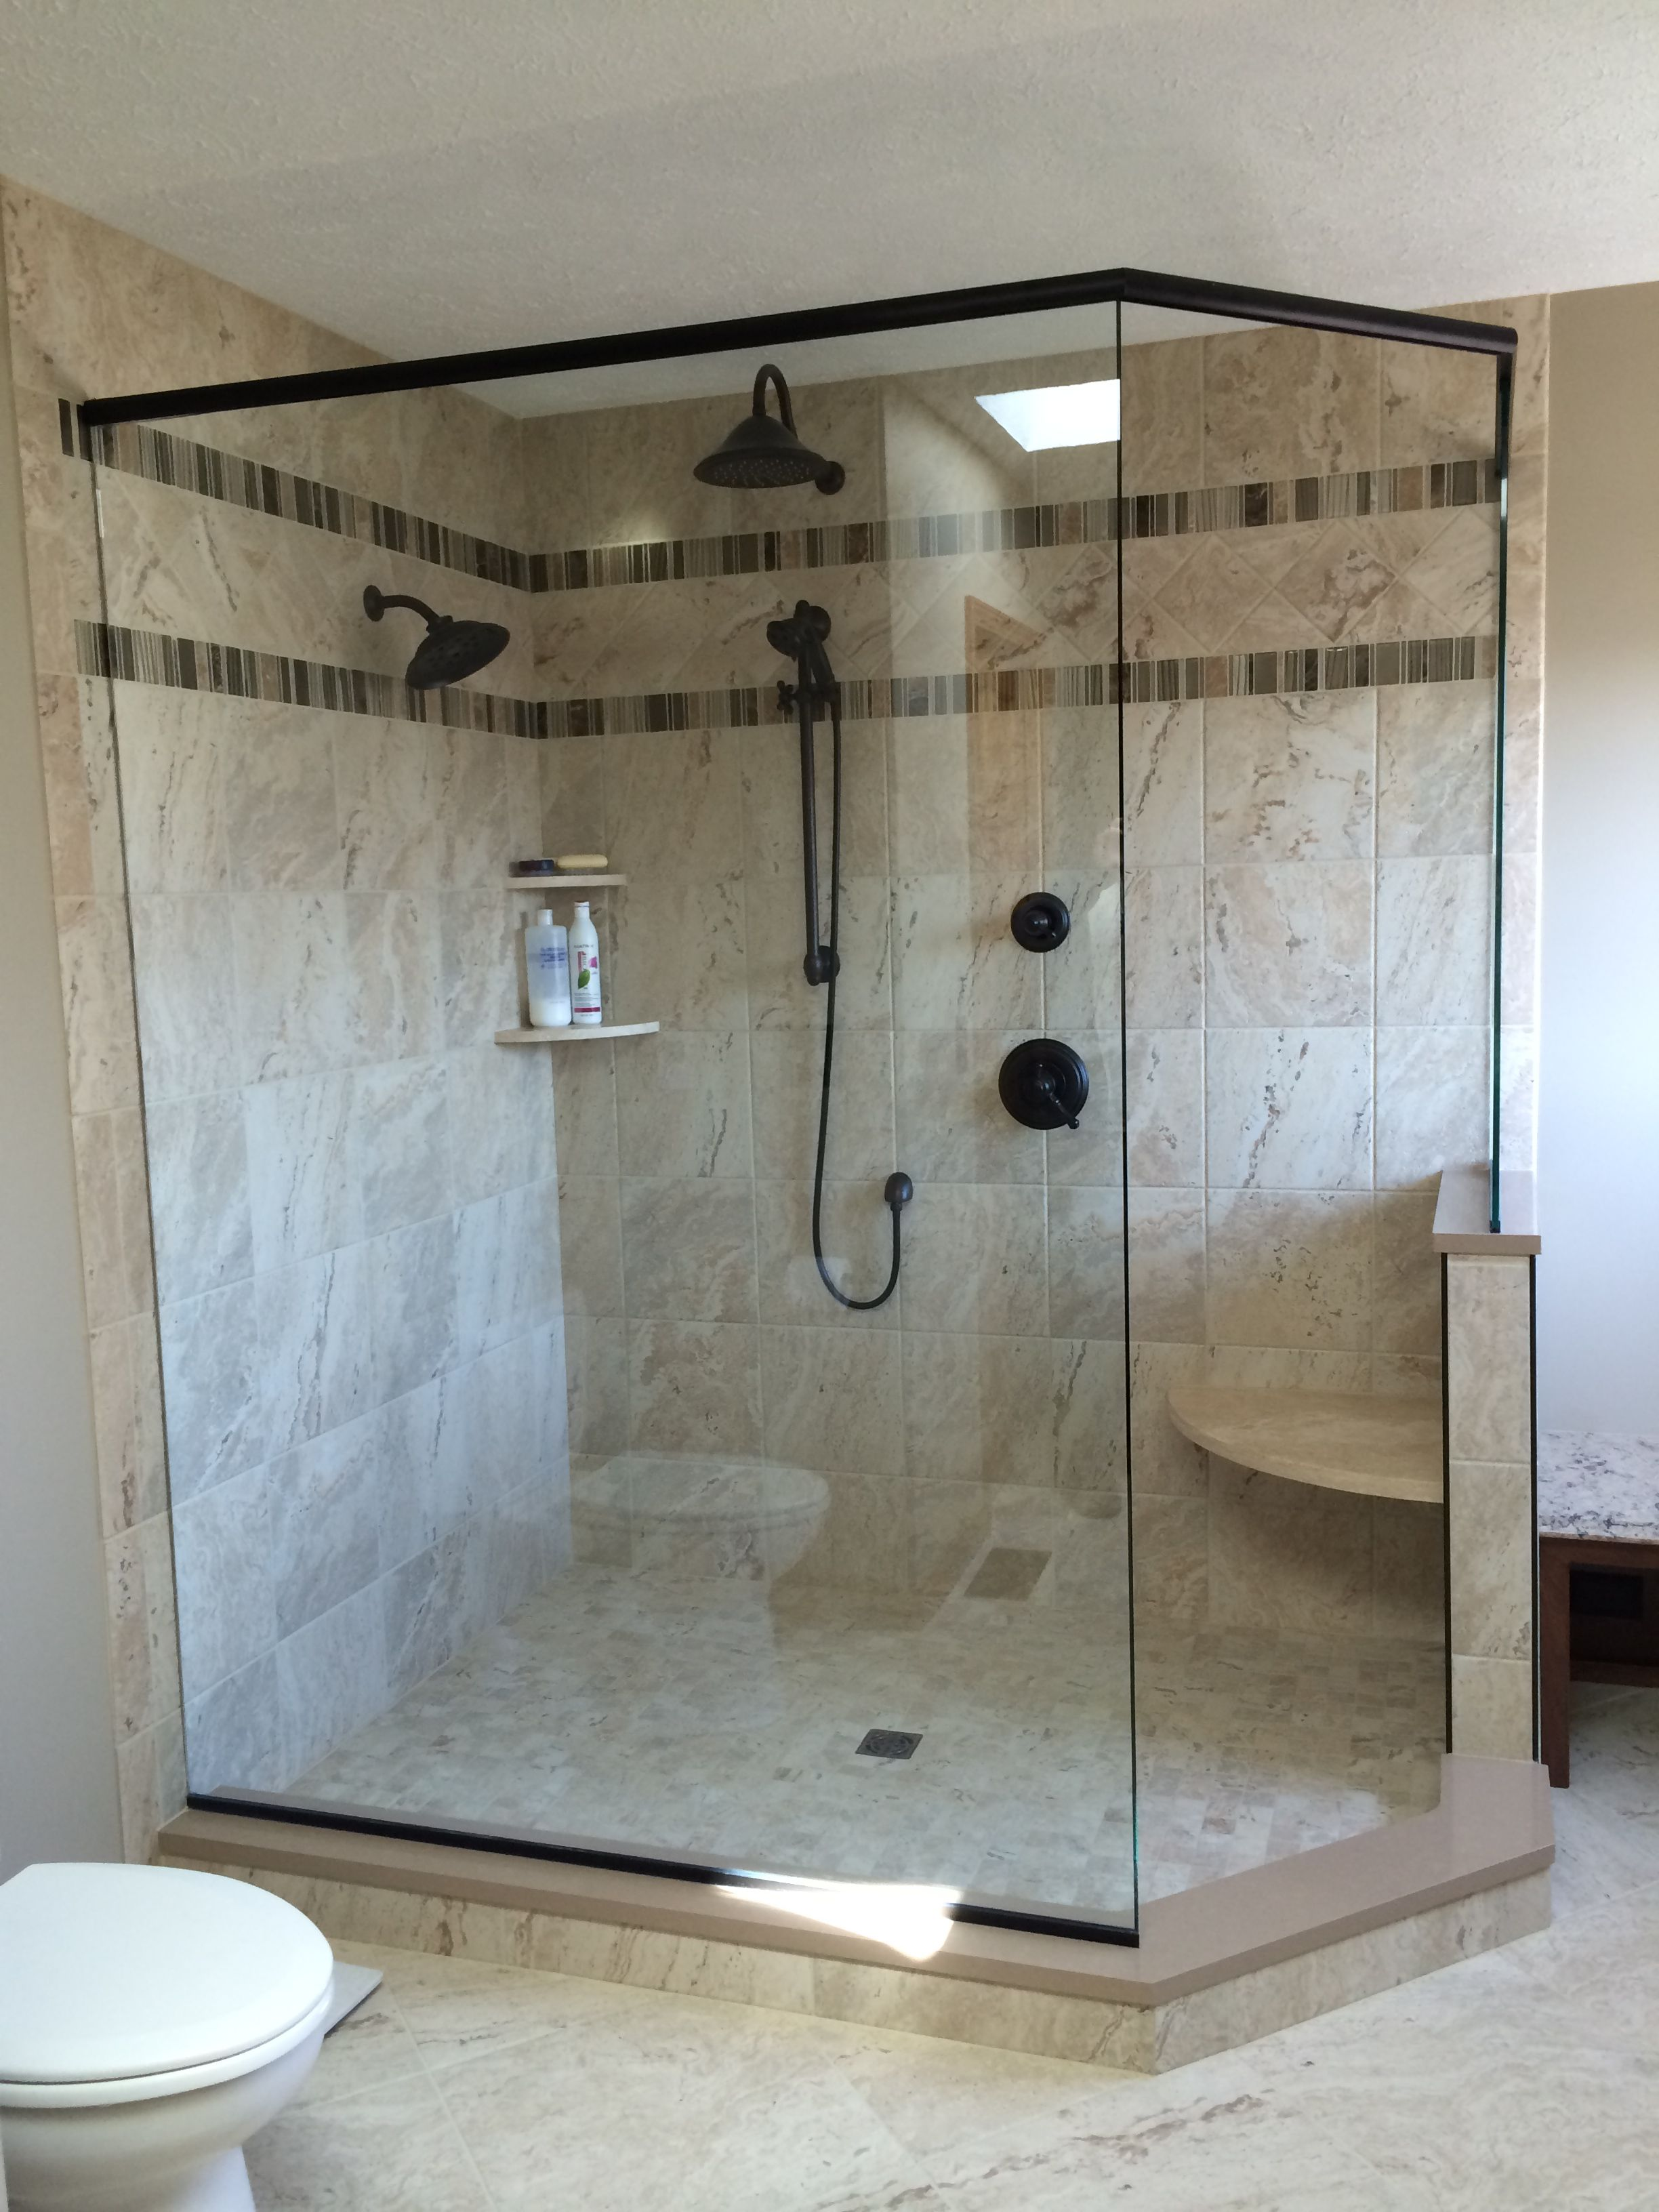 I Love My Walk In Shower We Removed A Garden Tub From Corner Of Bathroom To Create This Awesome